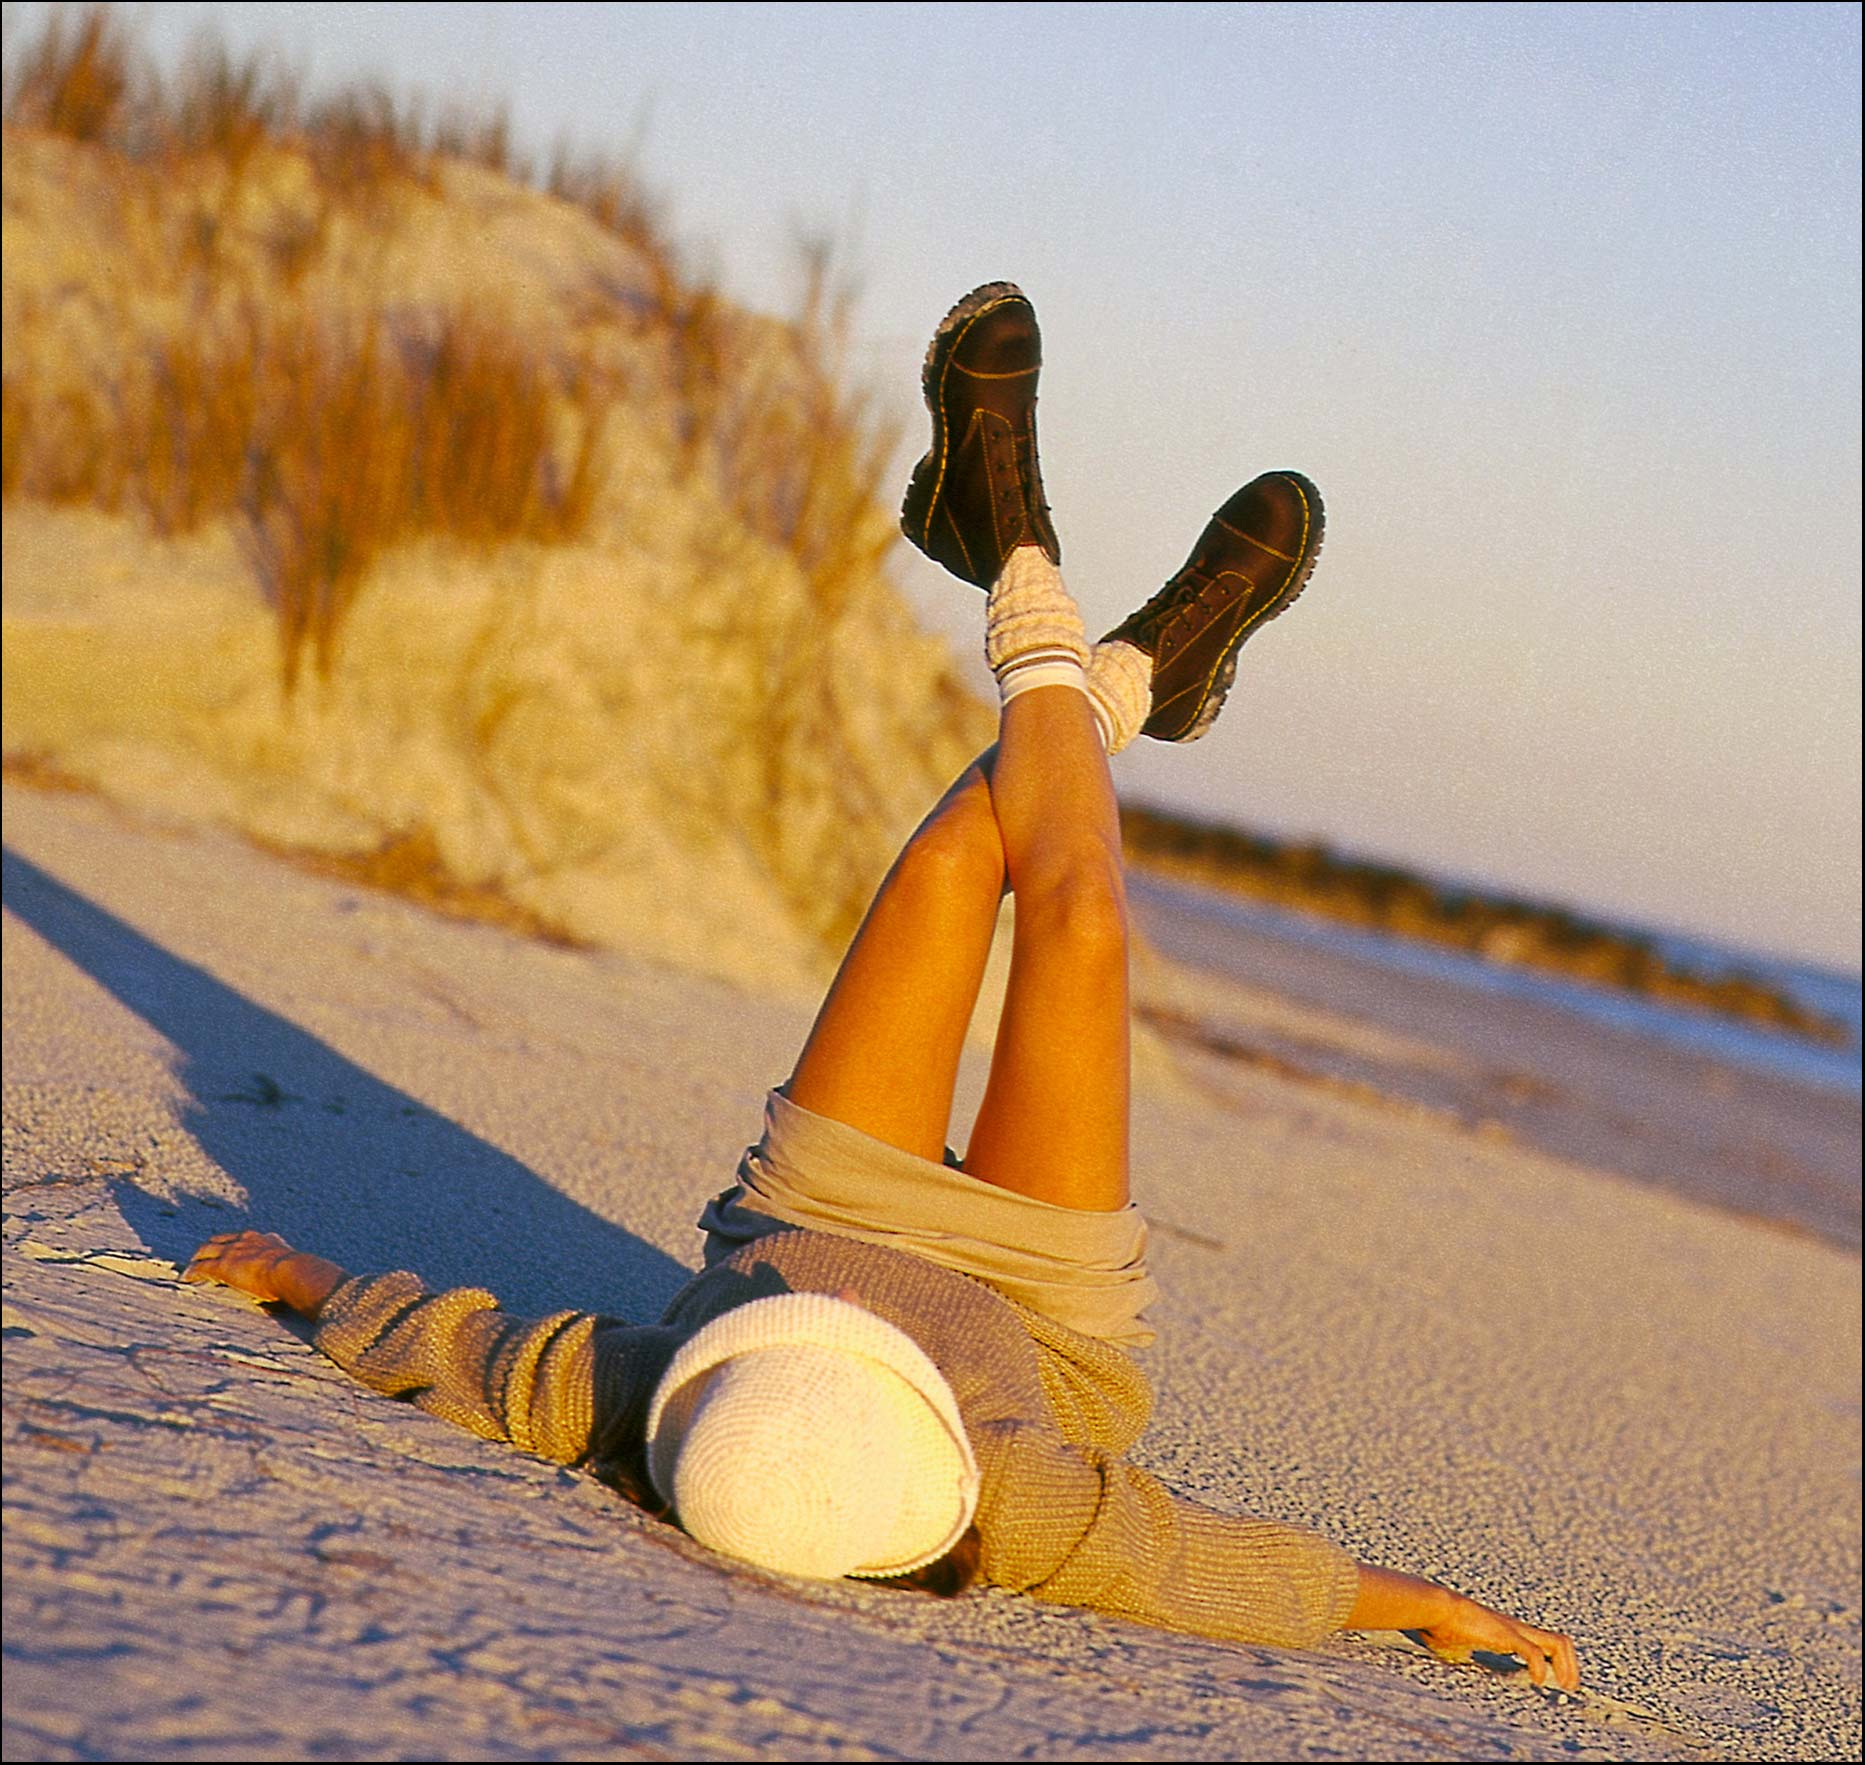 Girl lying on a beach wearing socks